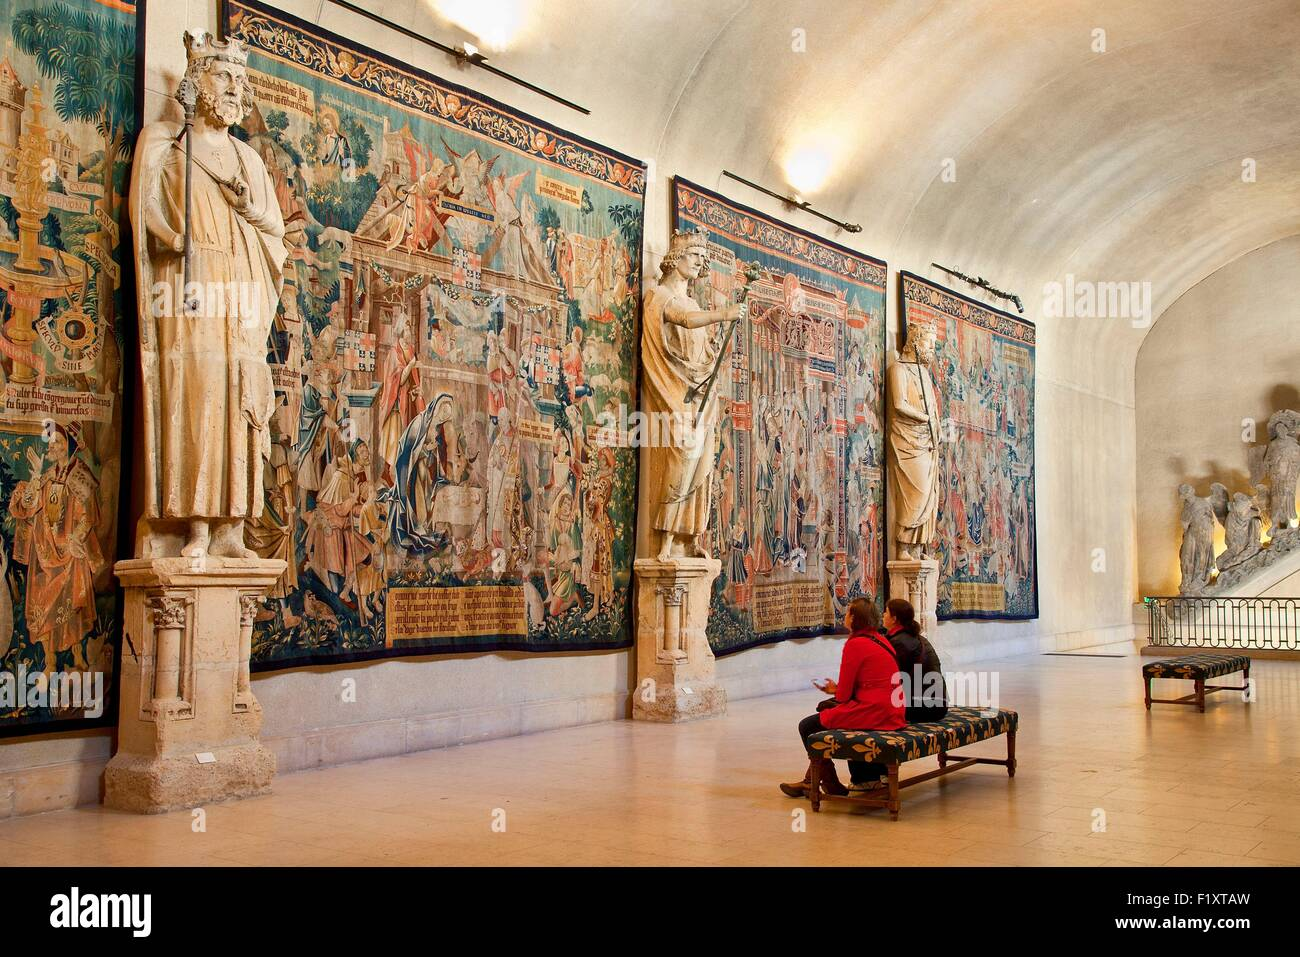 France, Marne, Reims, Palais du Tau, listed as World Heritage by ...